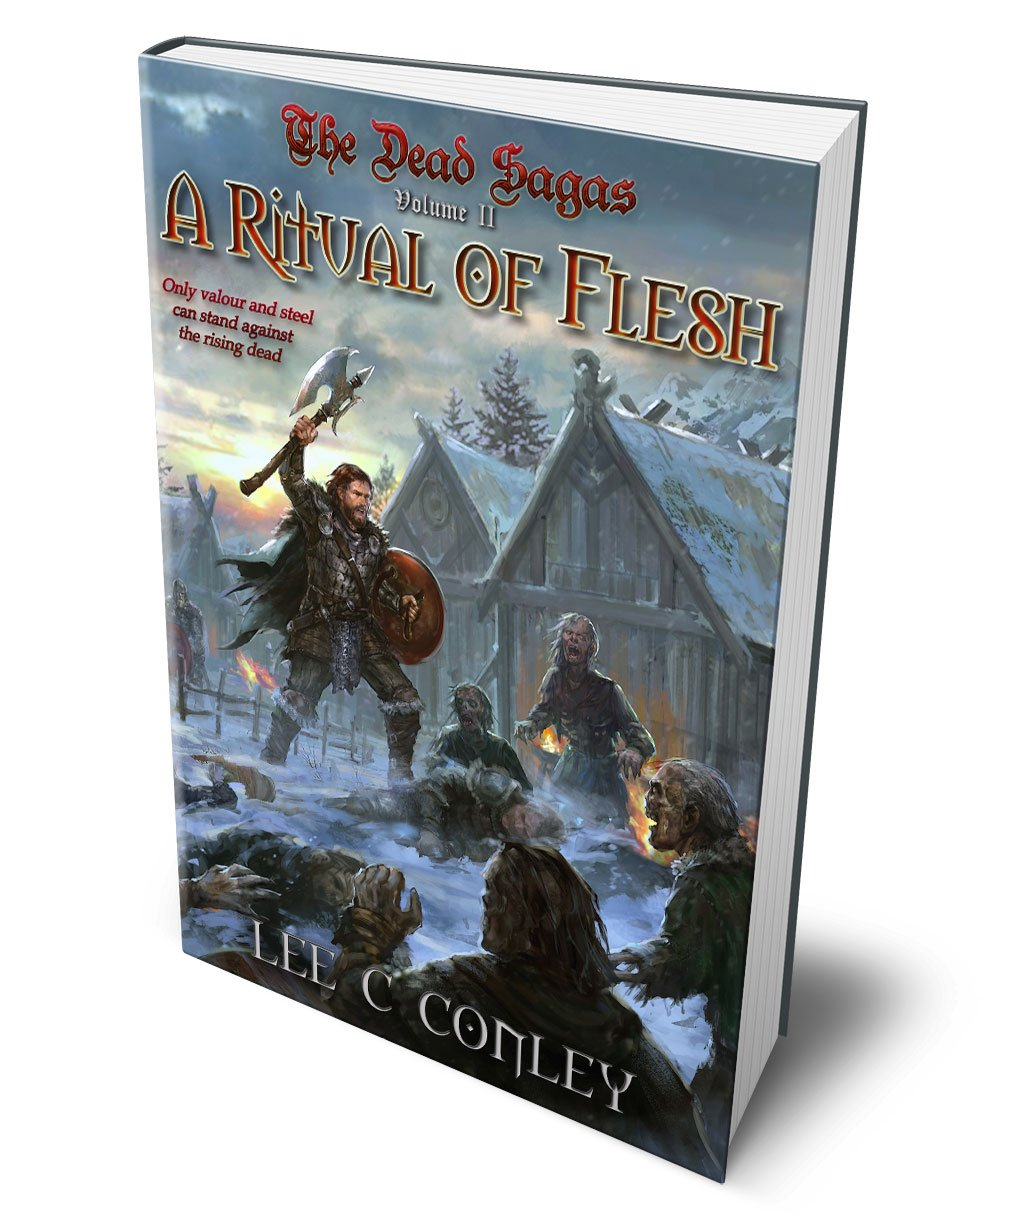 A Ritual of Flesh by Lee C Conley